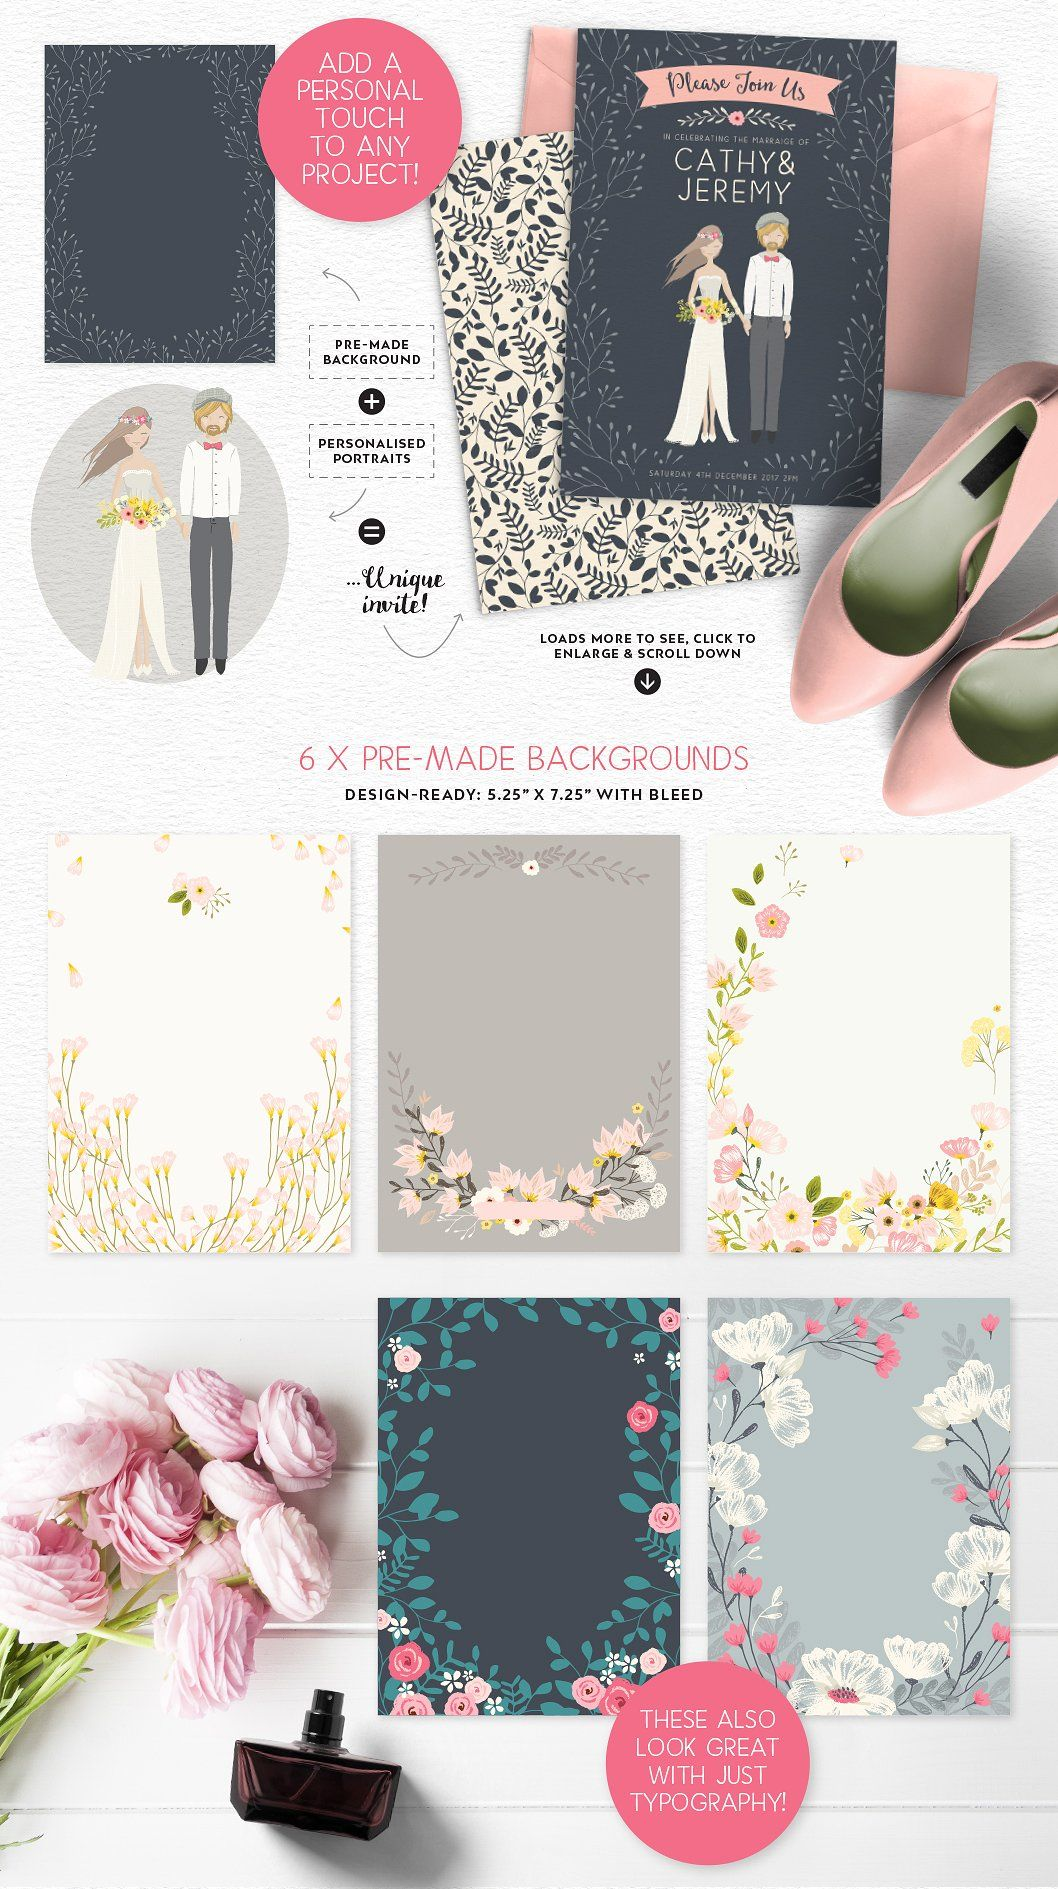 personalised portrait creator by lisa glanz on creativemarket ad